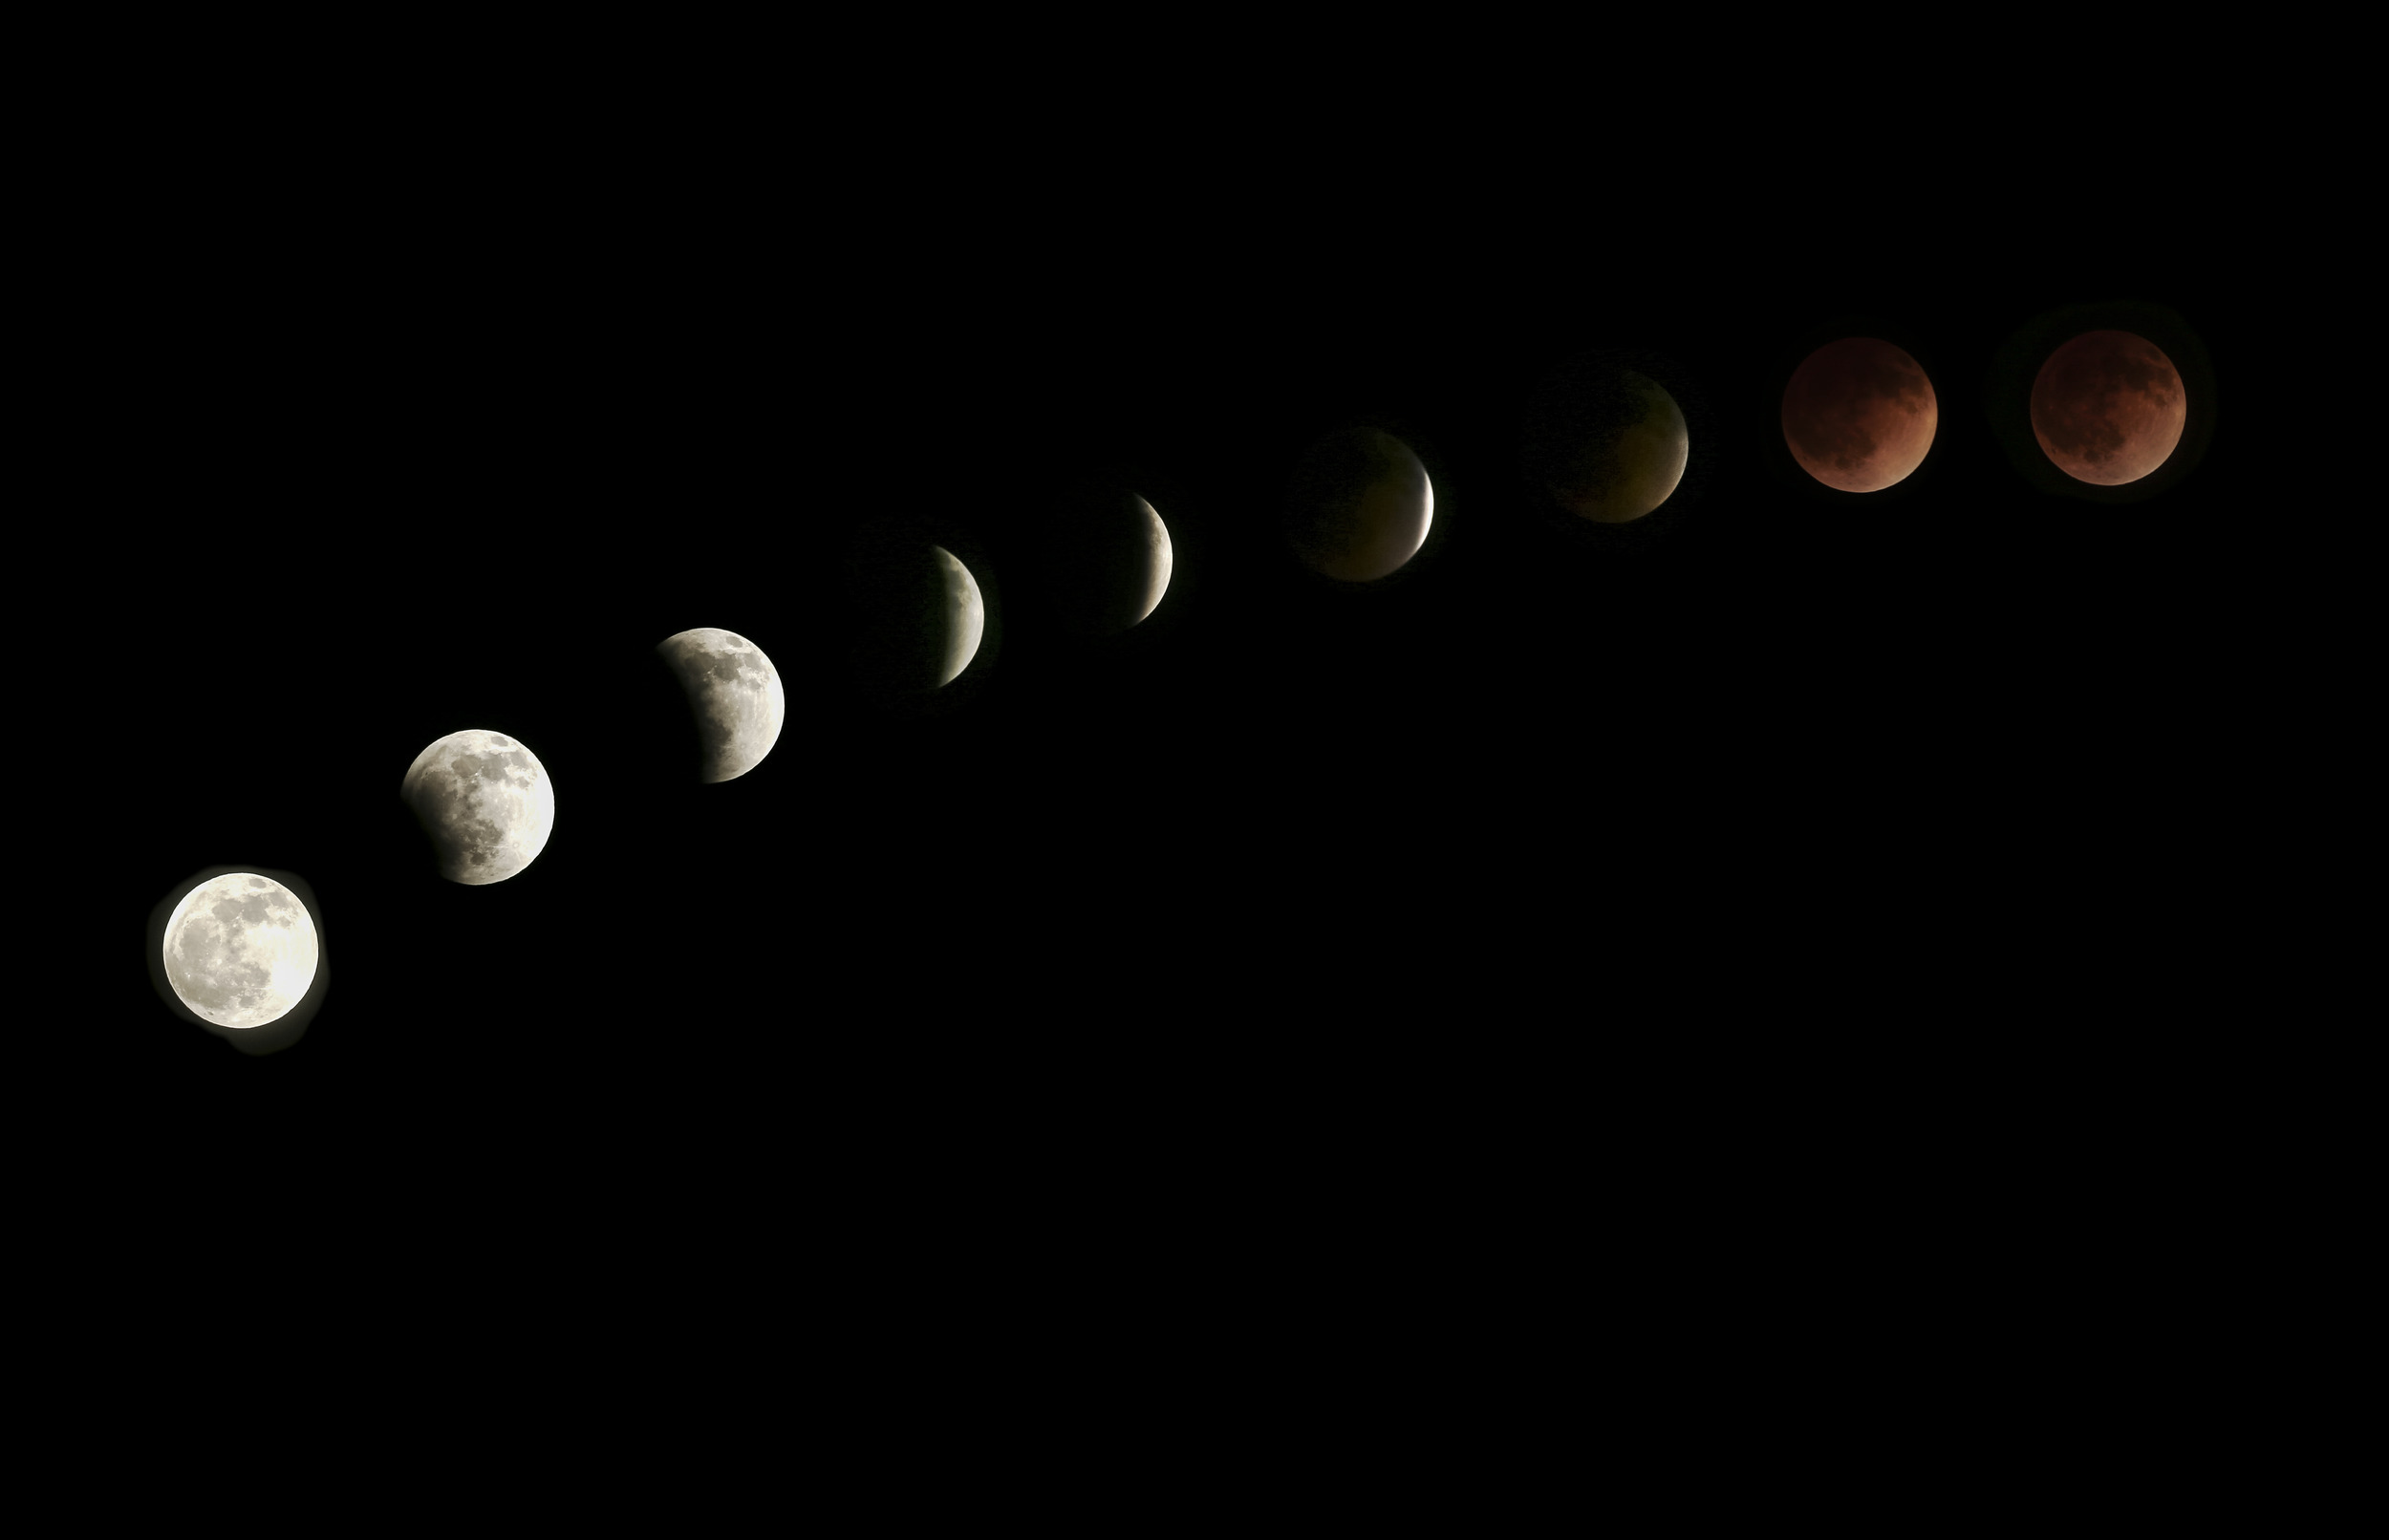 lunar eclipse melbourne - photo #3